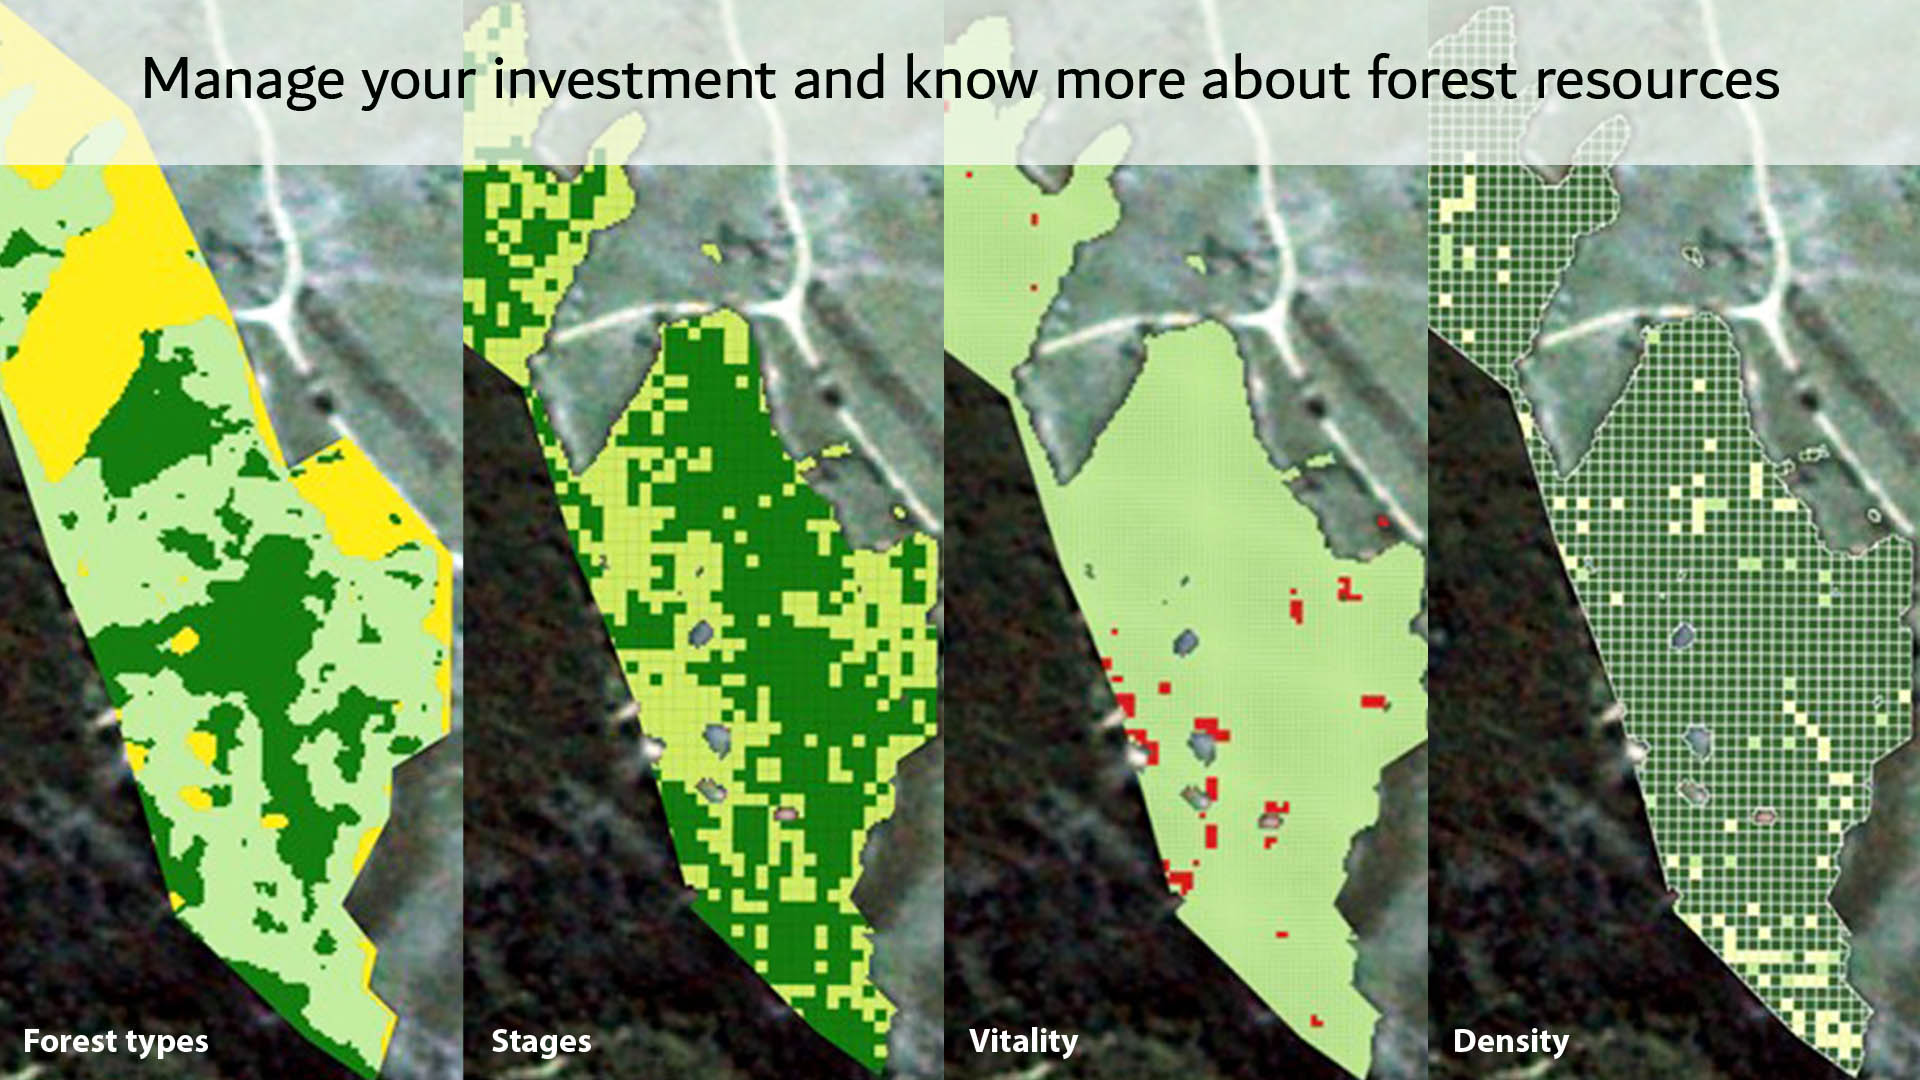 Manage investment and know more about forest resources